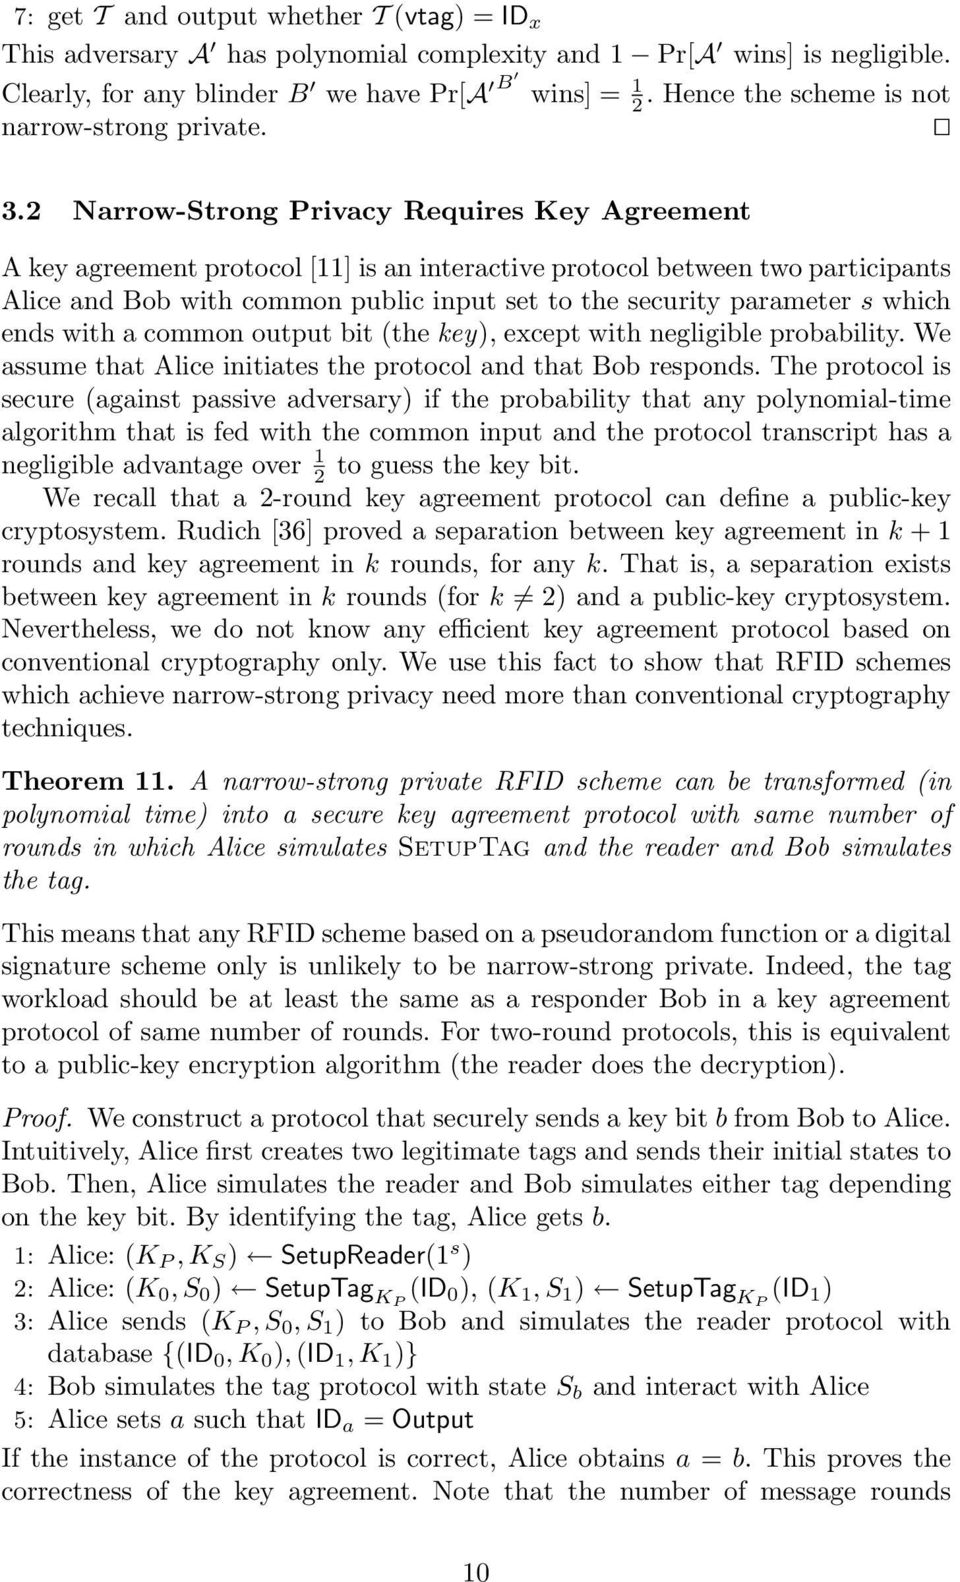 2 Narrow-Strong Privacy Requires Key Agreement A key agreement protocol [11] is an interactive protocol between two participants Alice and Bob with common public input set to the security parameter s